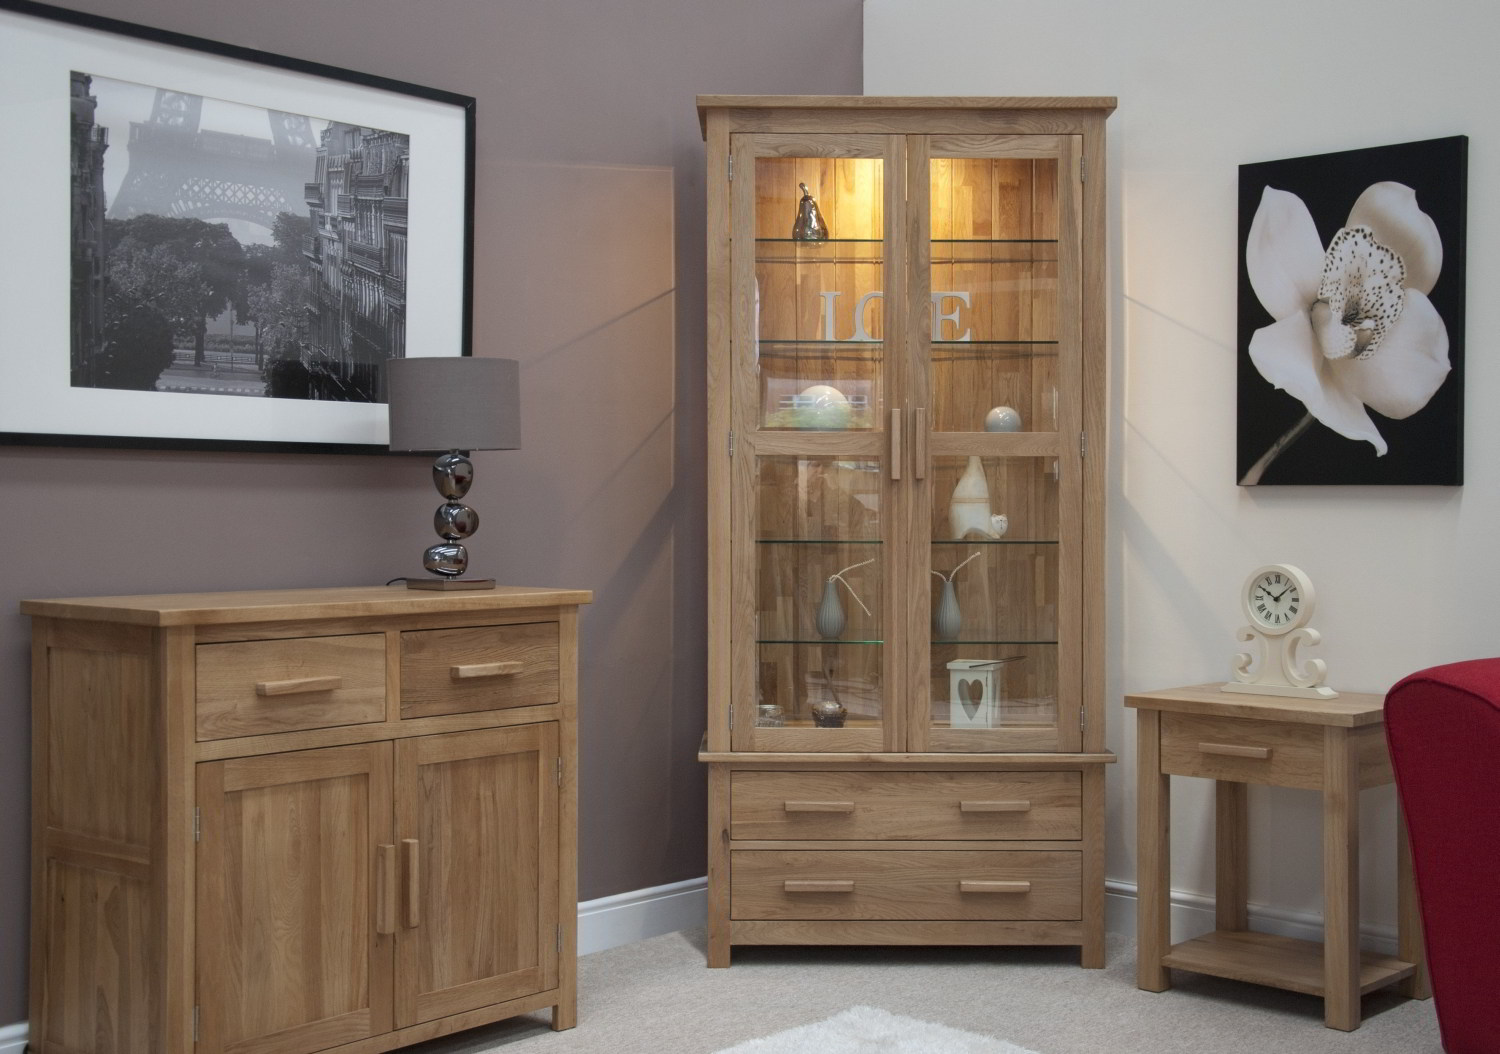 Living Room Cabinets : Eton solid oak living room furniture glazed display ...